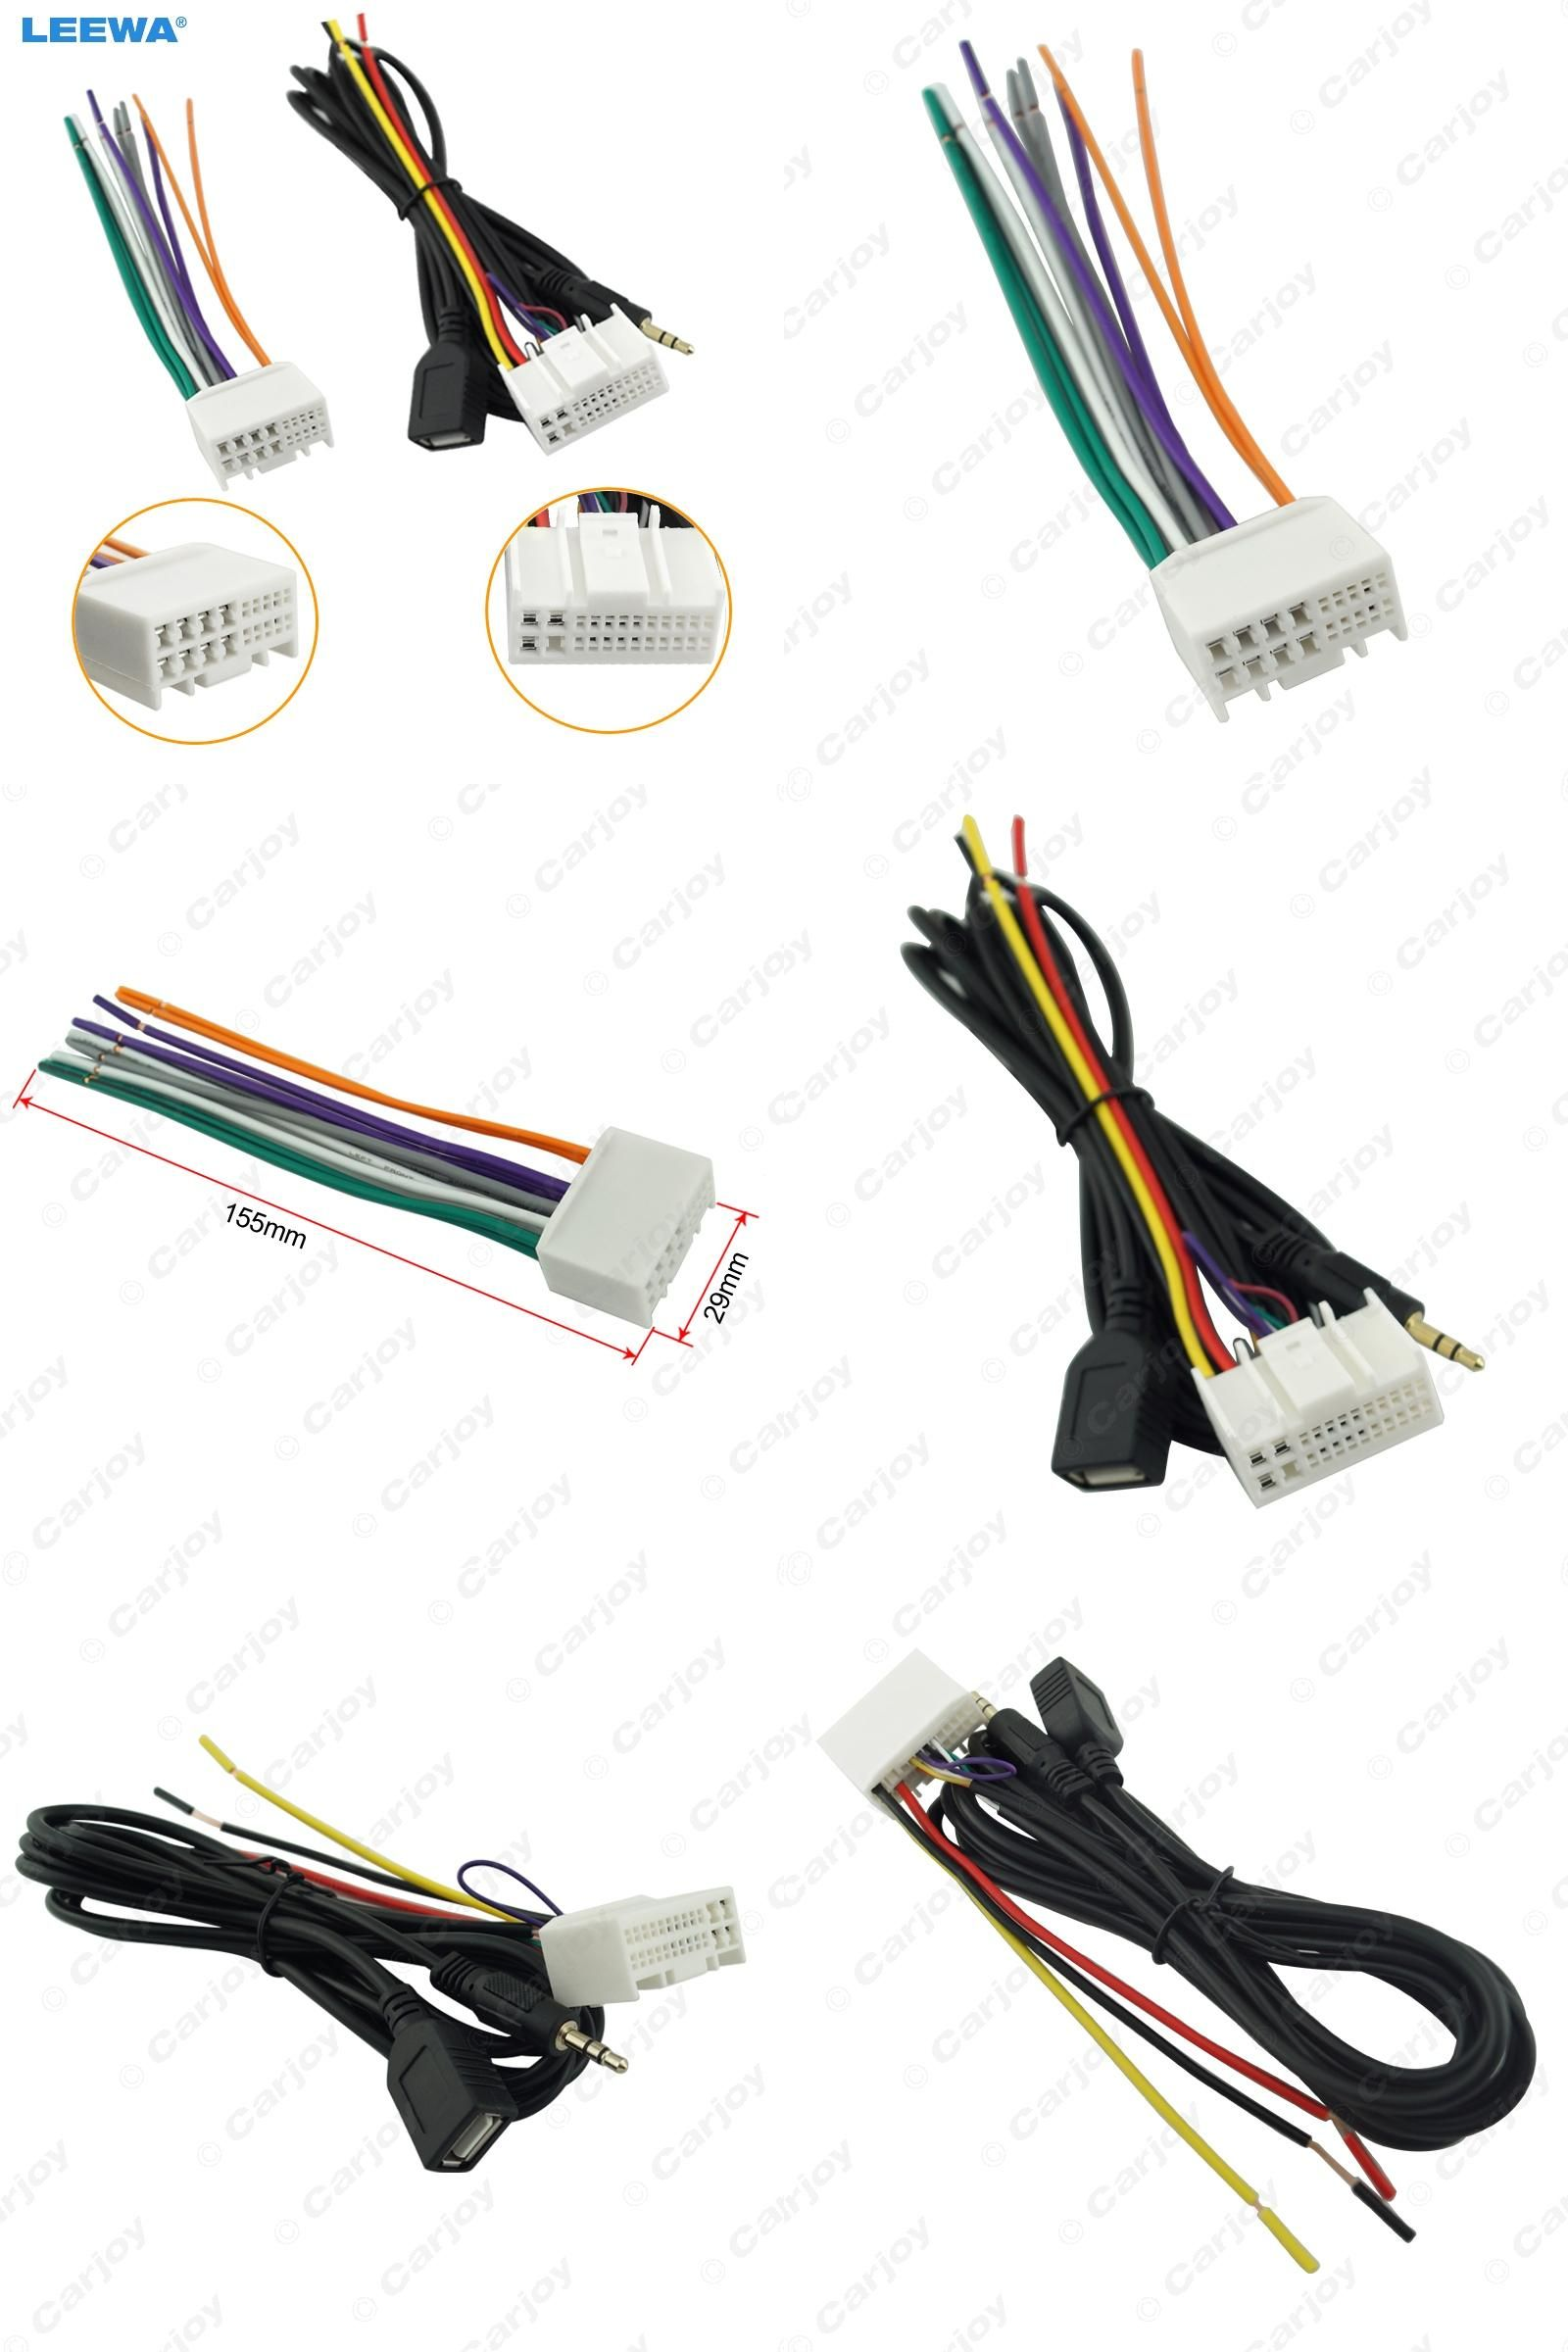 65bba15fb3a8d9bc4f1b698bf8827601 visit to buy] car audio cd stereo wiring harness adapter with usb where to buy a trailer wiring harness at bayanpartner.co